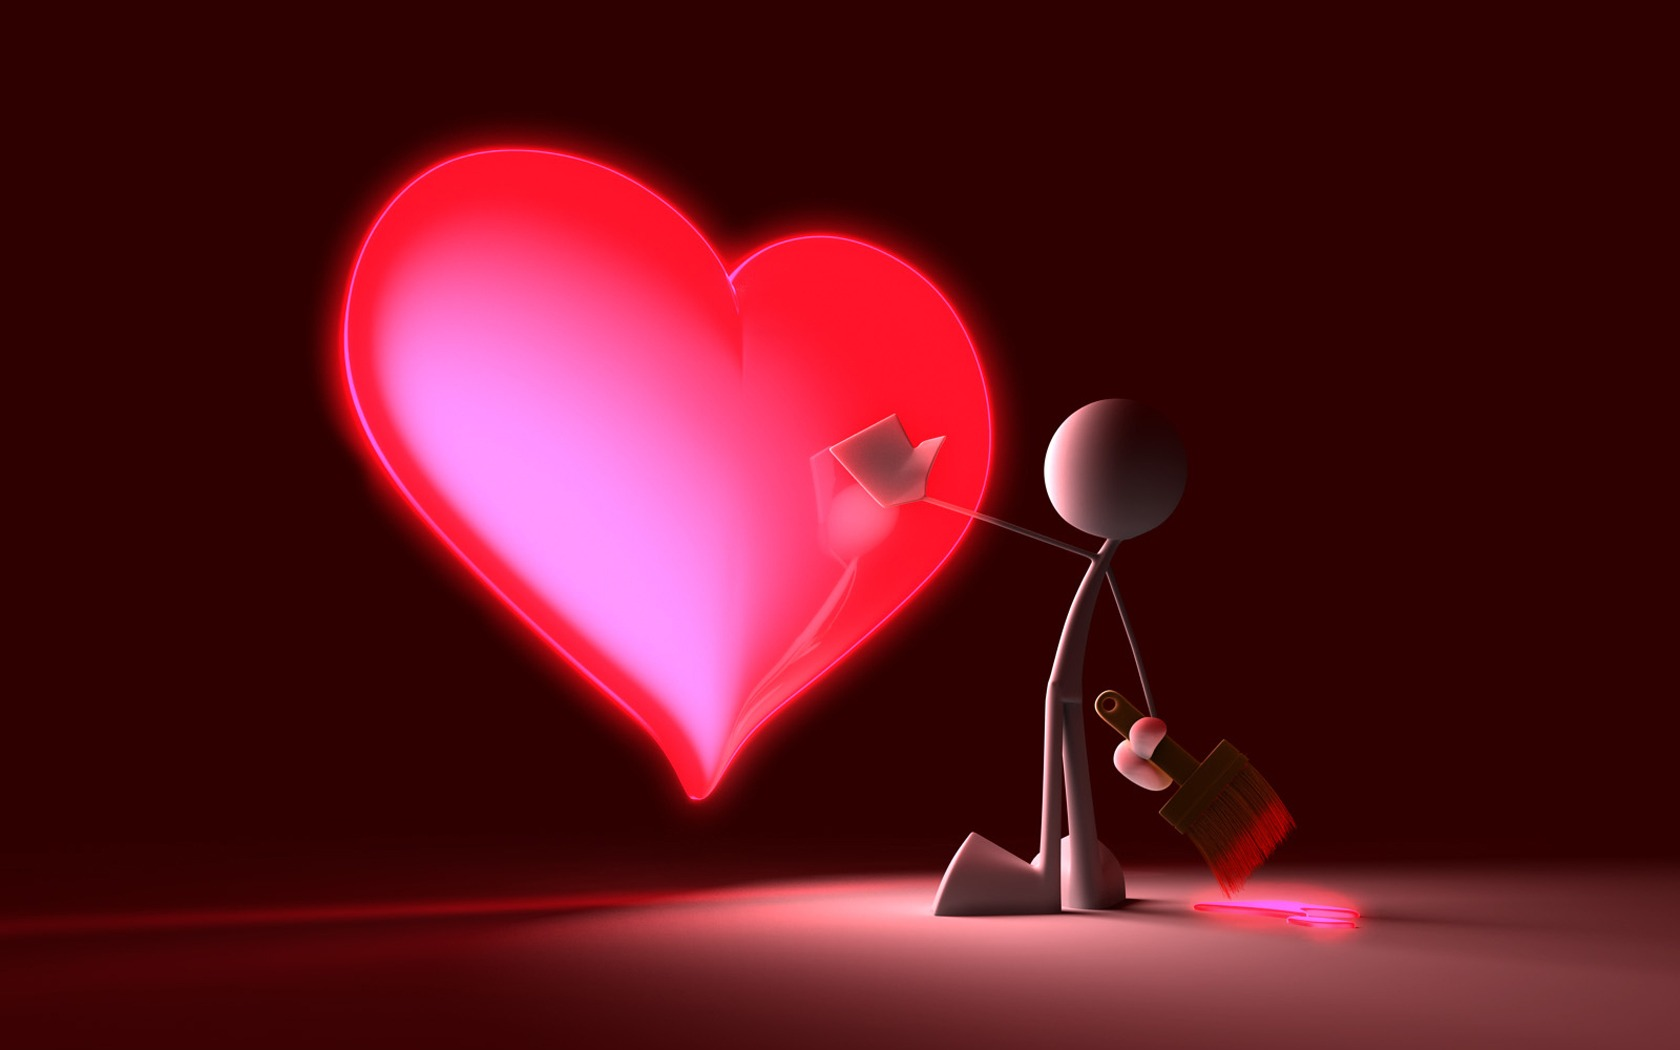 touch my heart wallpaper 3d characters 3d wallpaper 1680 1050 1680x1050